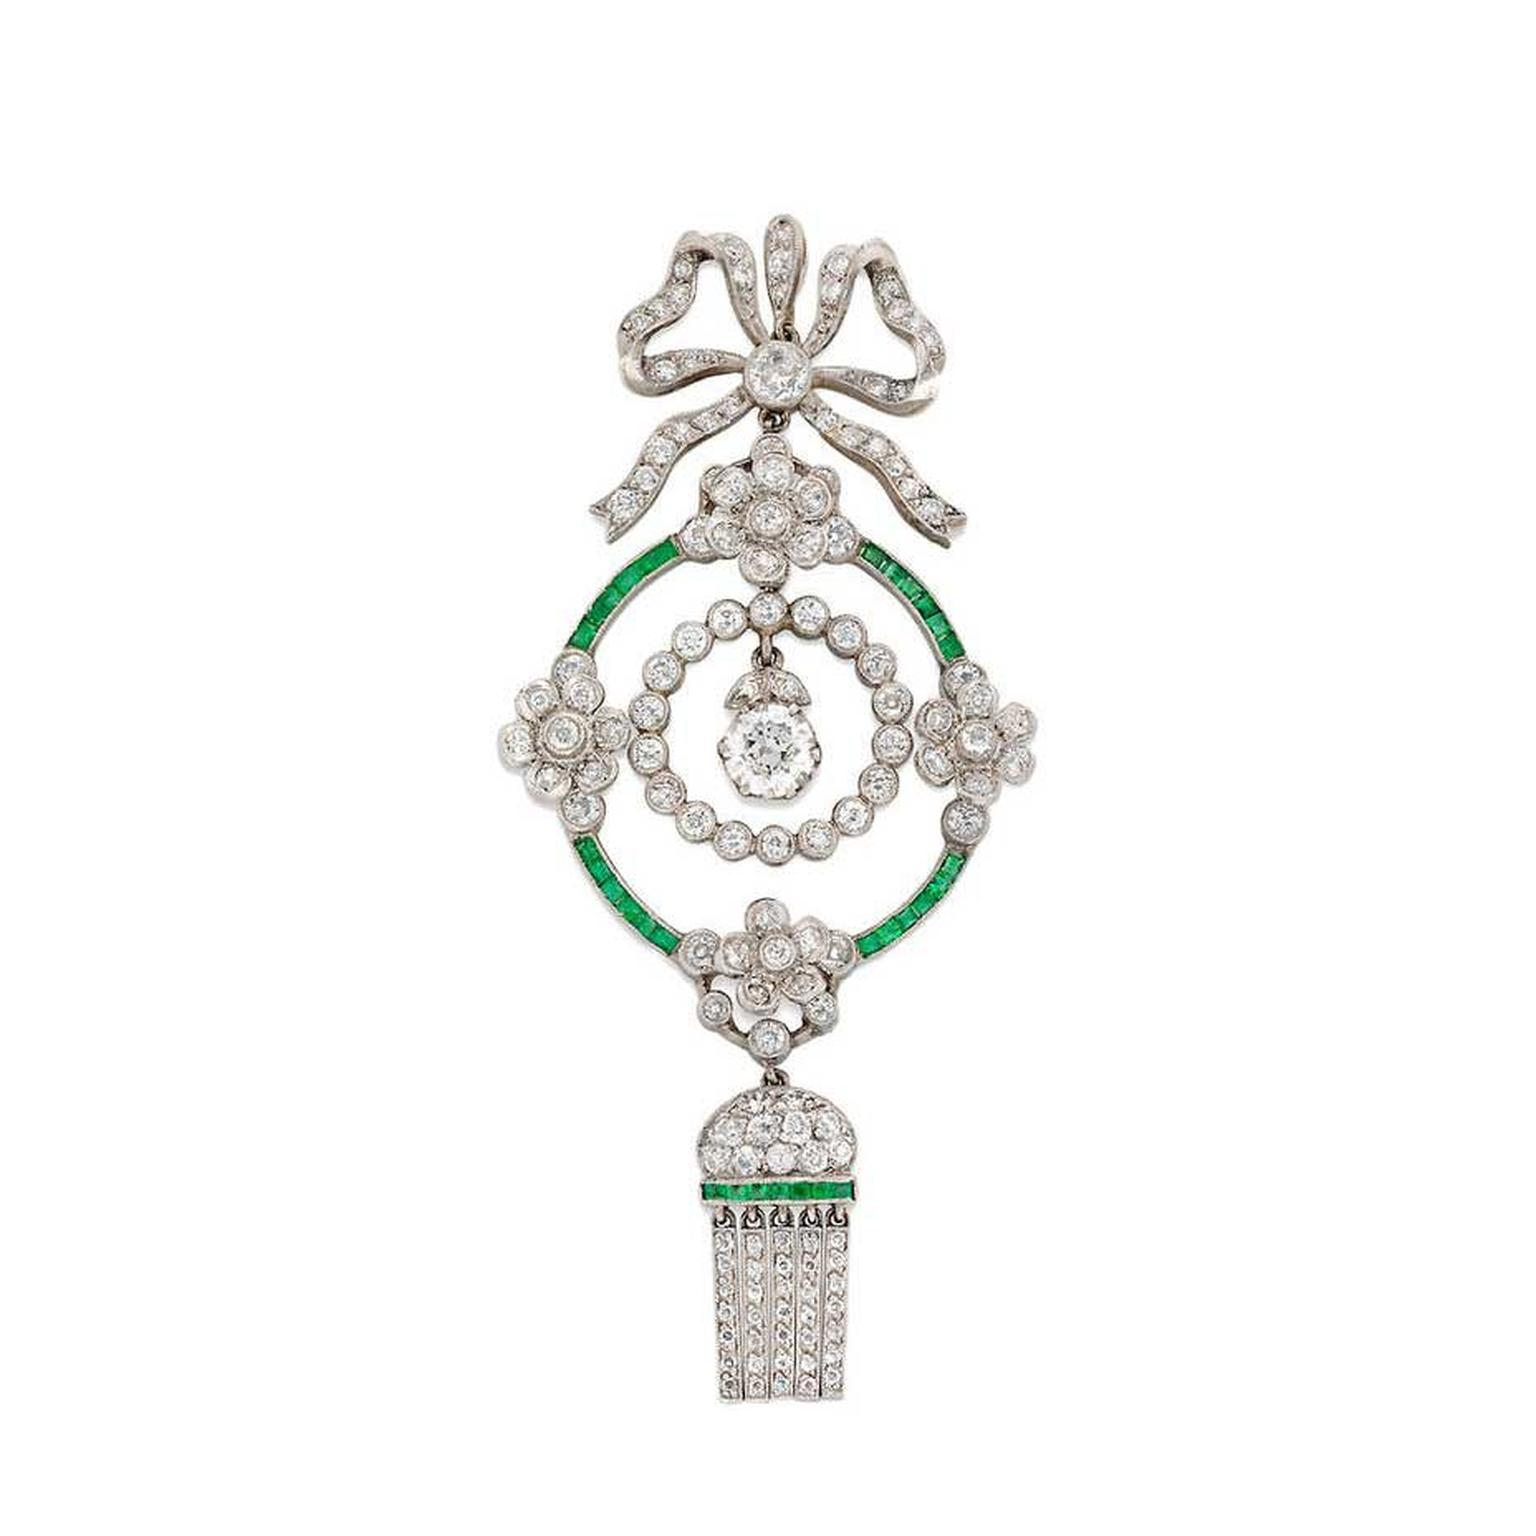 Bentley & Skinner Edwardian diamond and emerald pendant